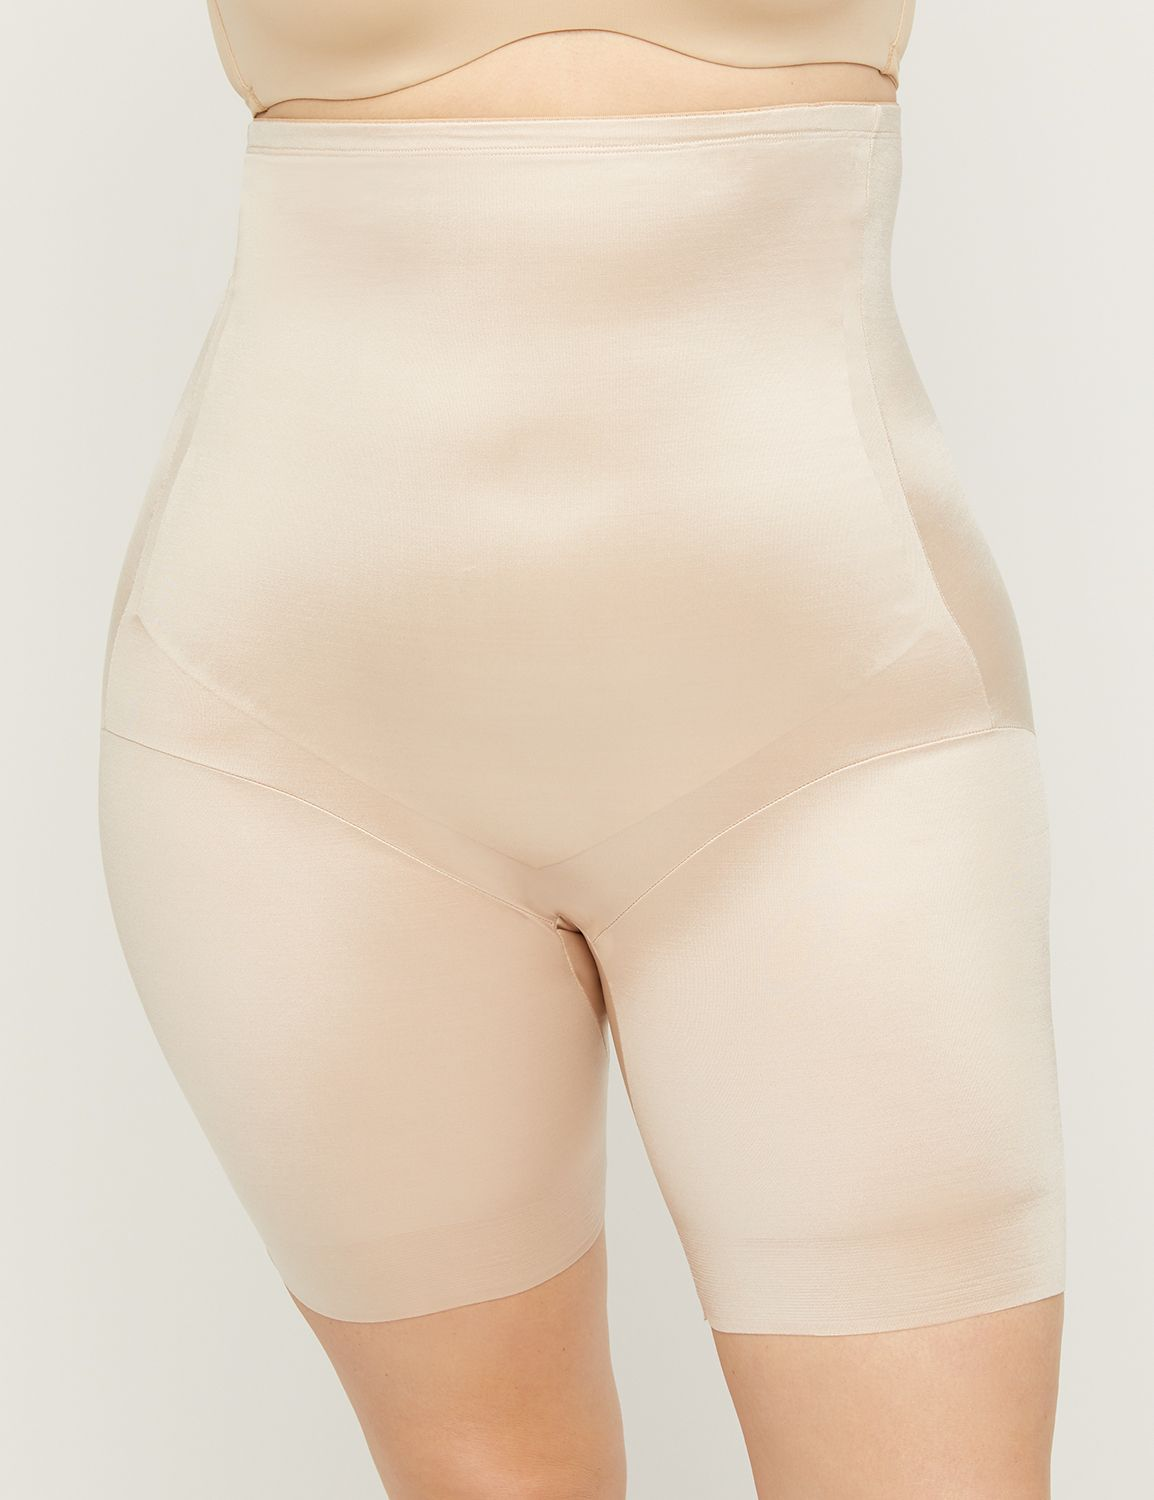 44c1aad1252 Plus Size Shapewear In Various Styles